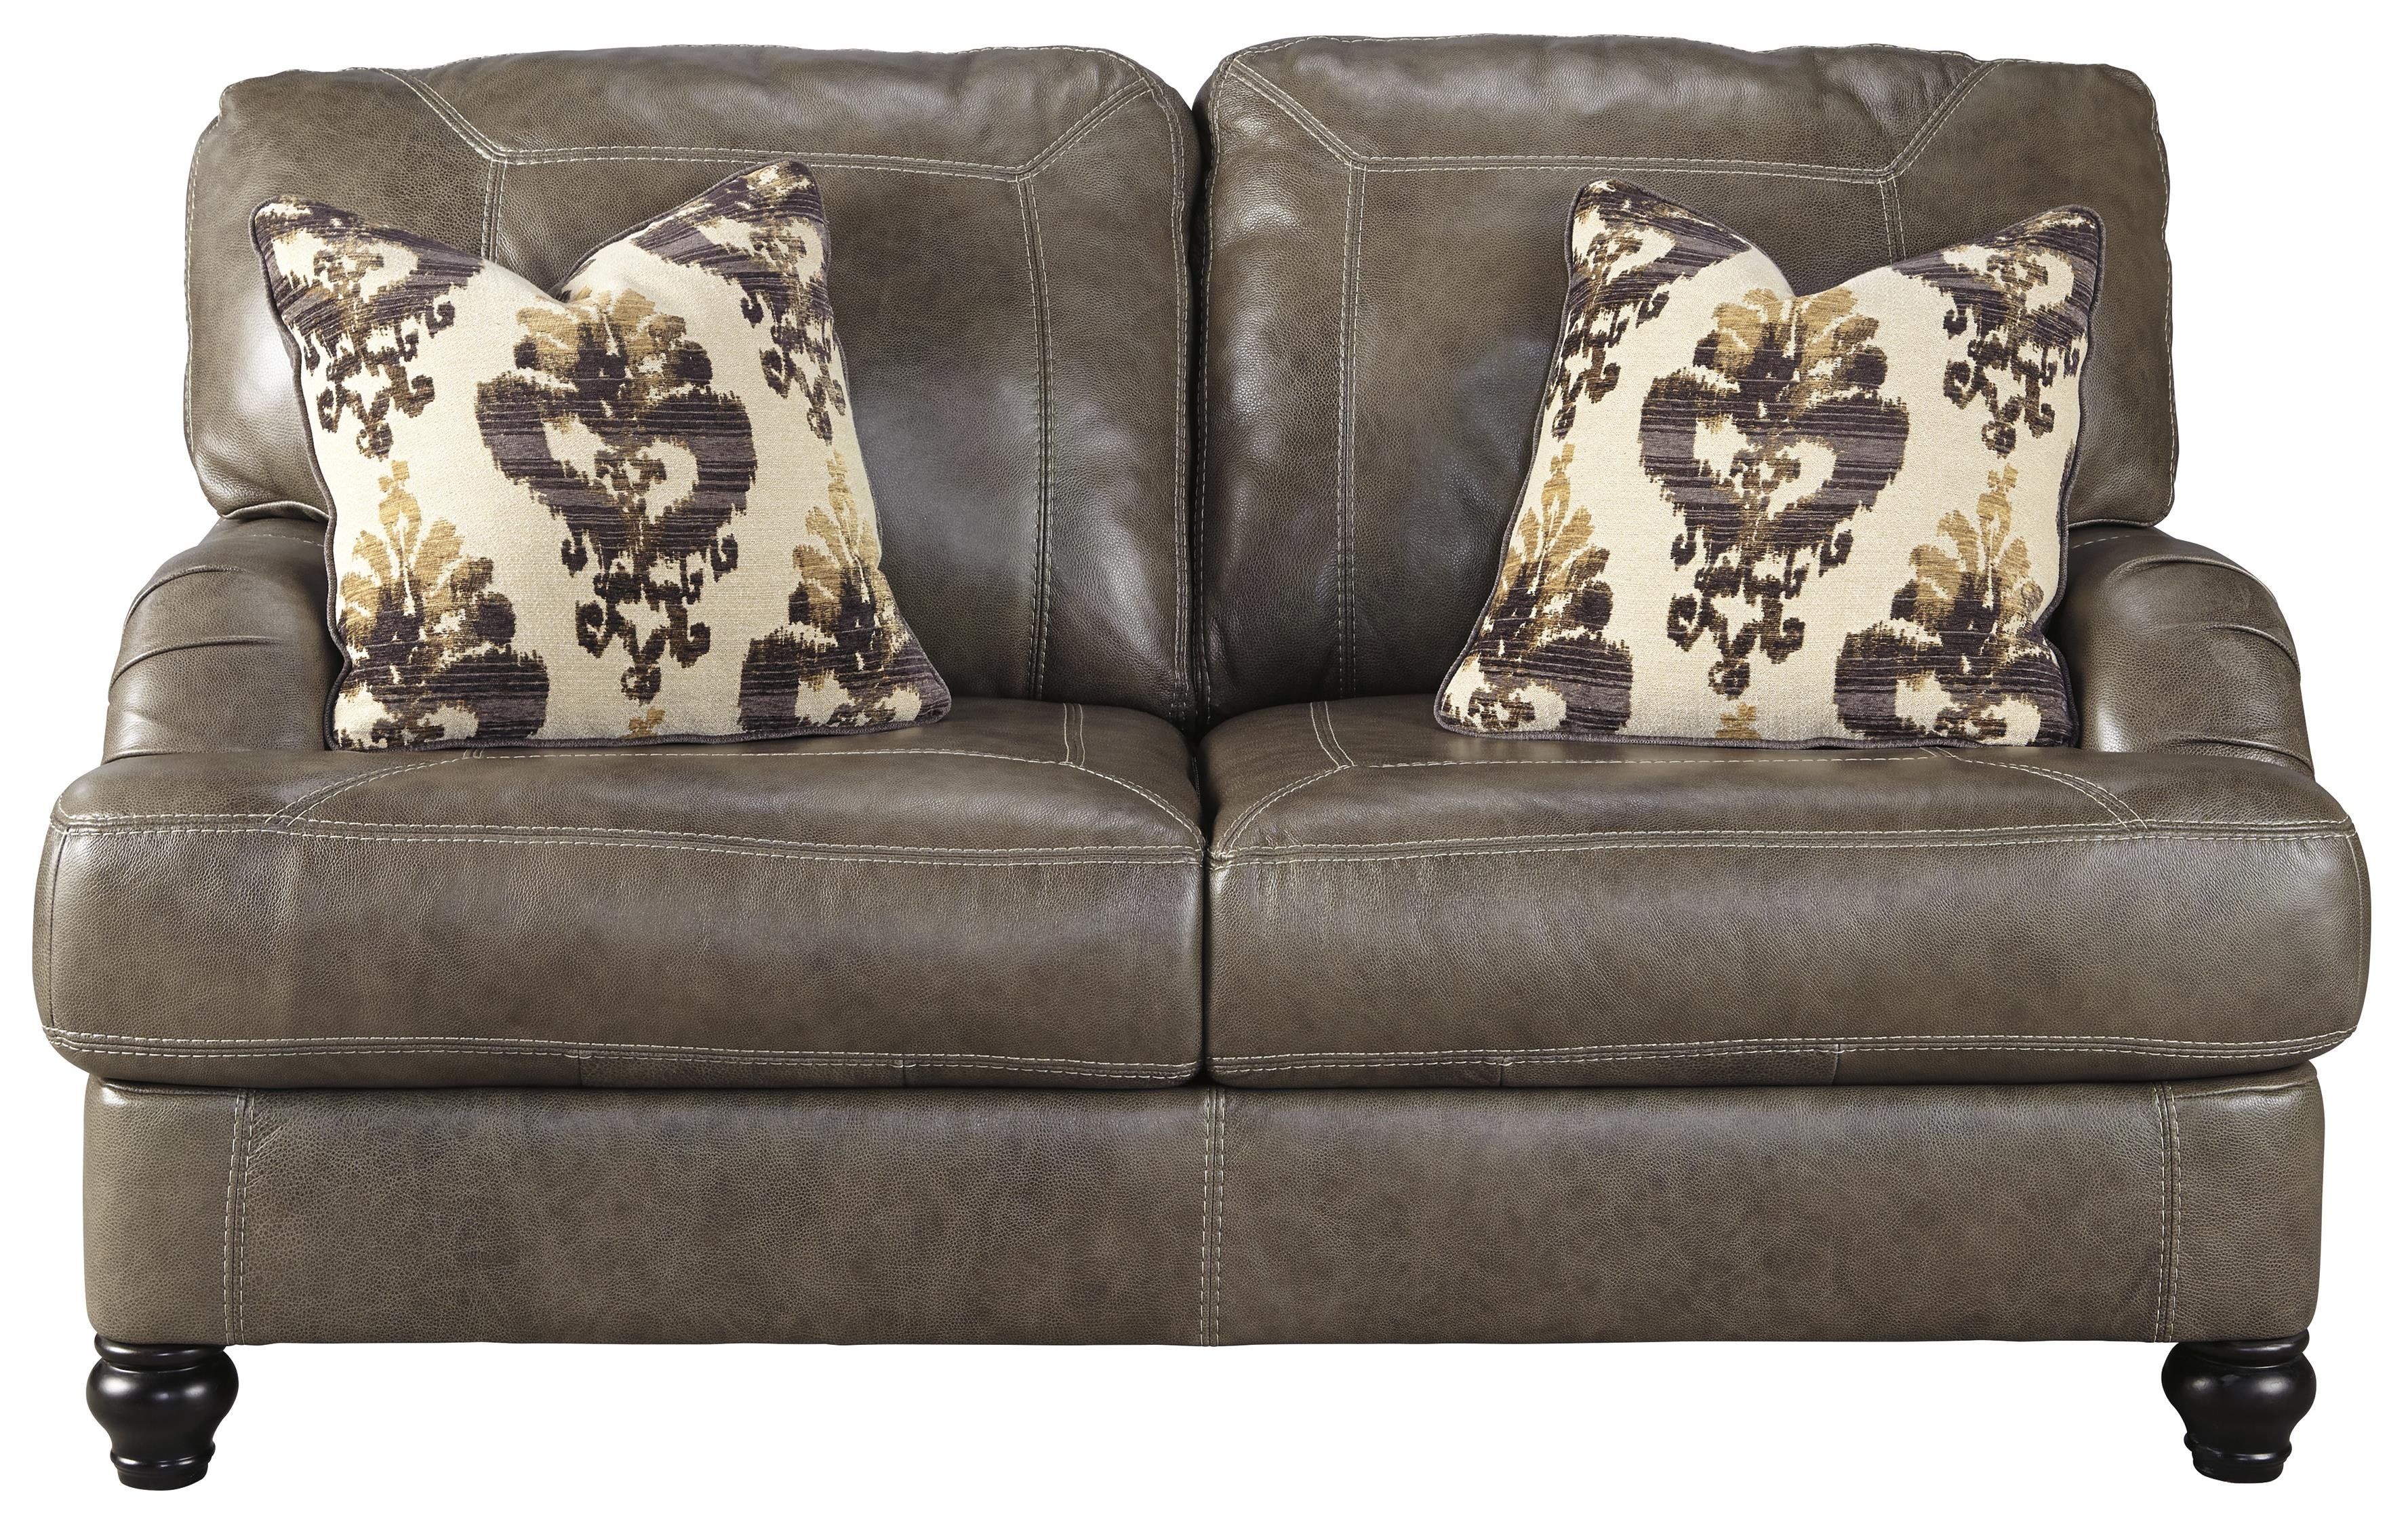 Benchcraft Kannerdy Loveseat - Item Number: 8040235